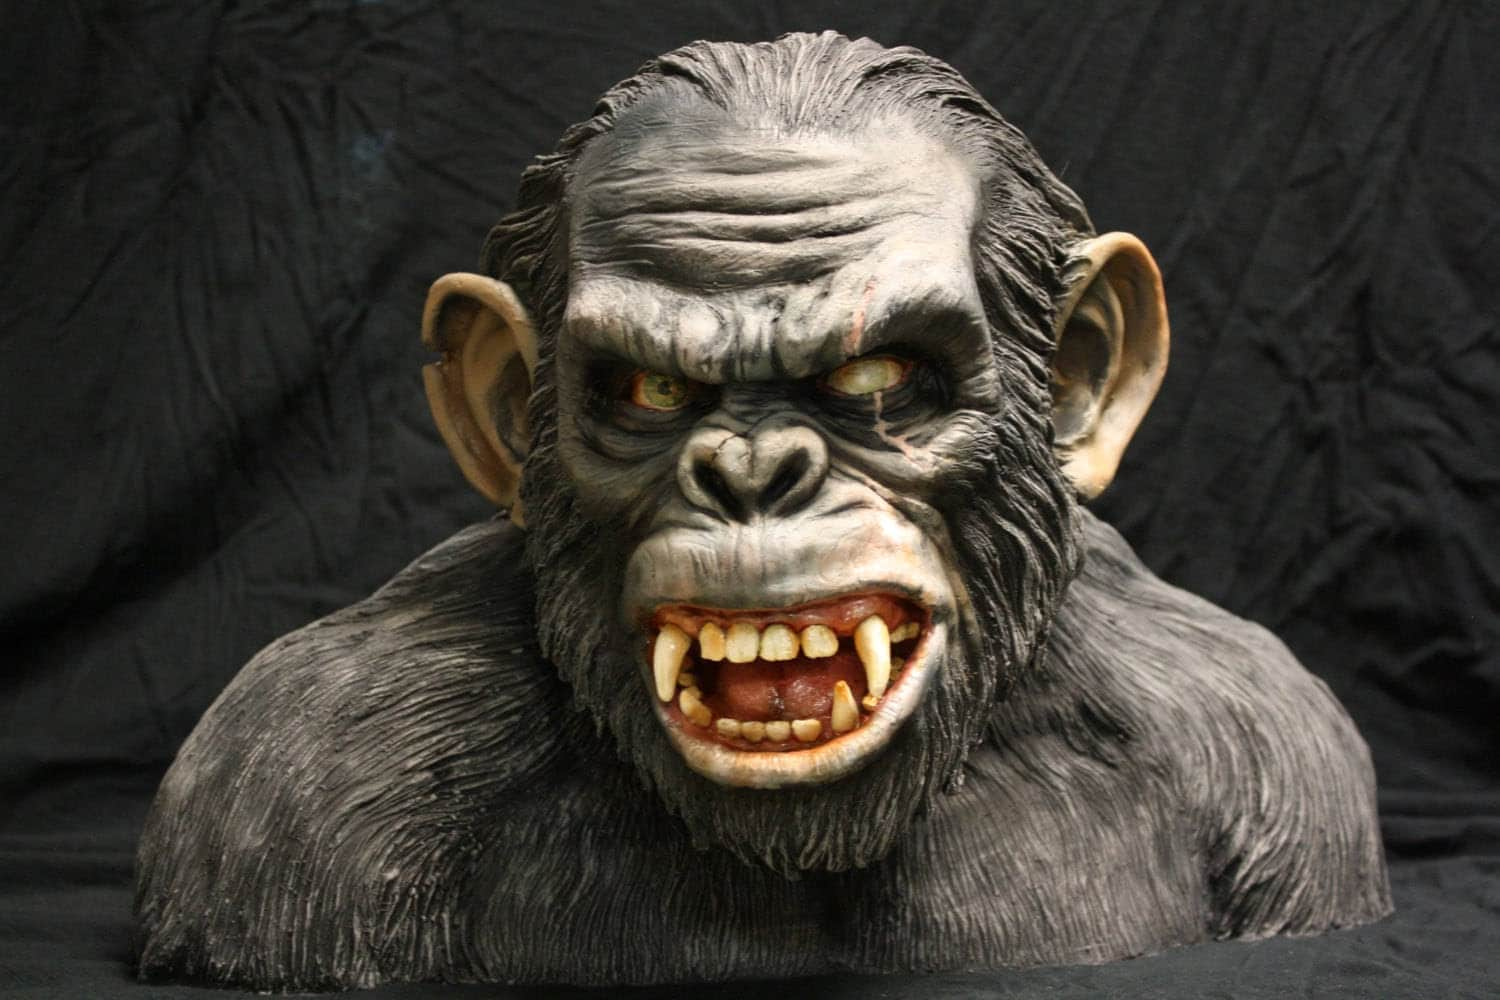 PAINTED planet of the apes Koba bust life size resin